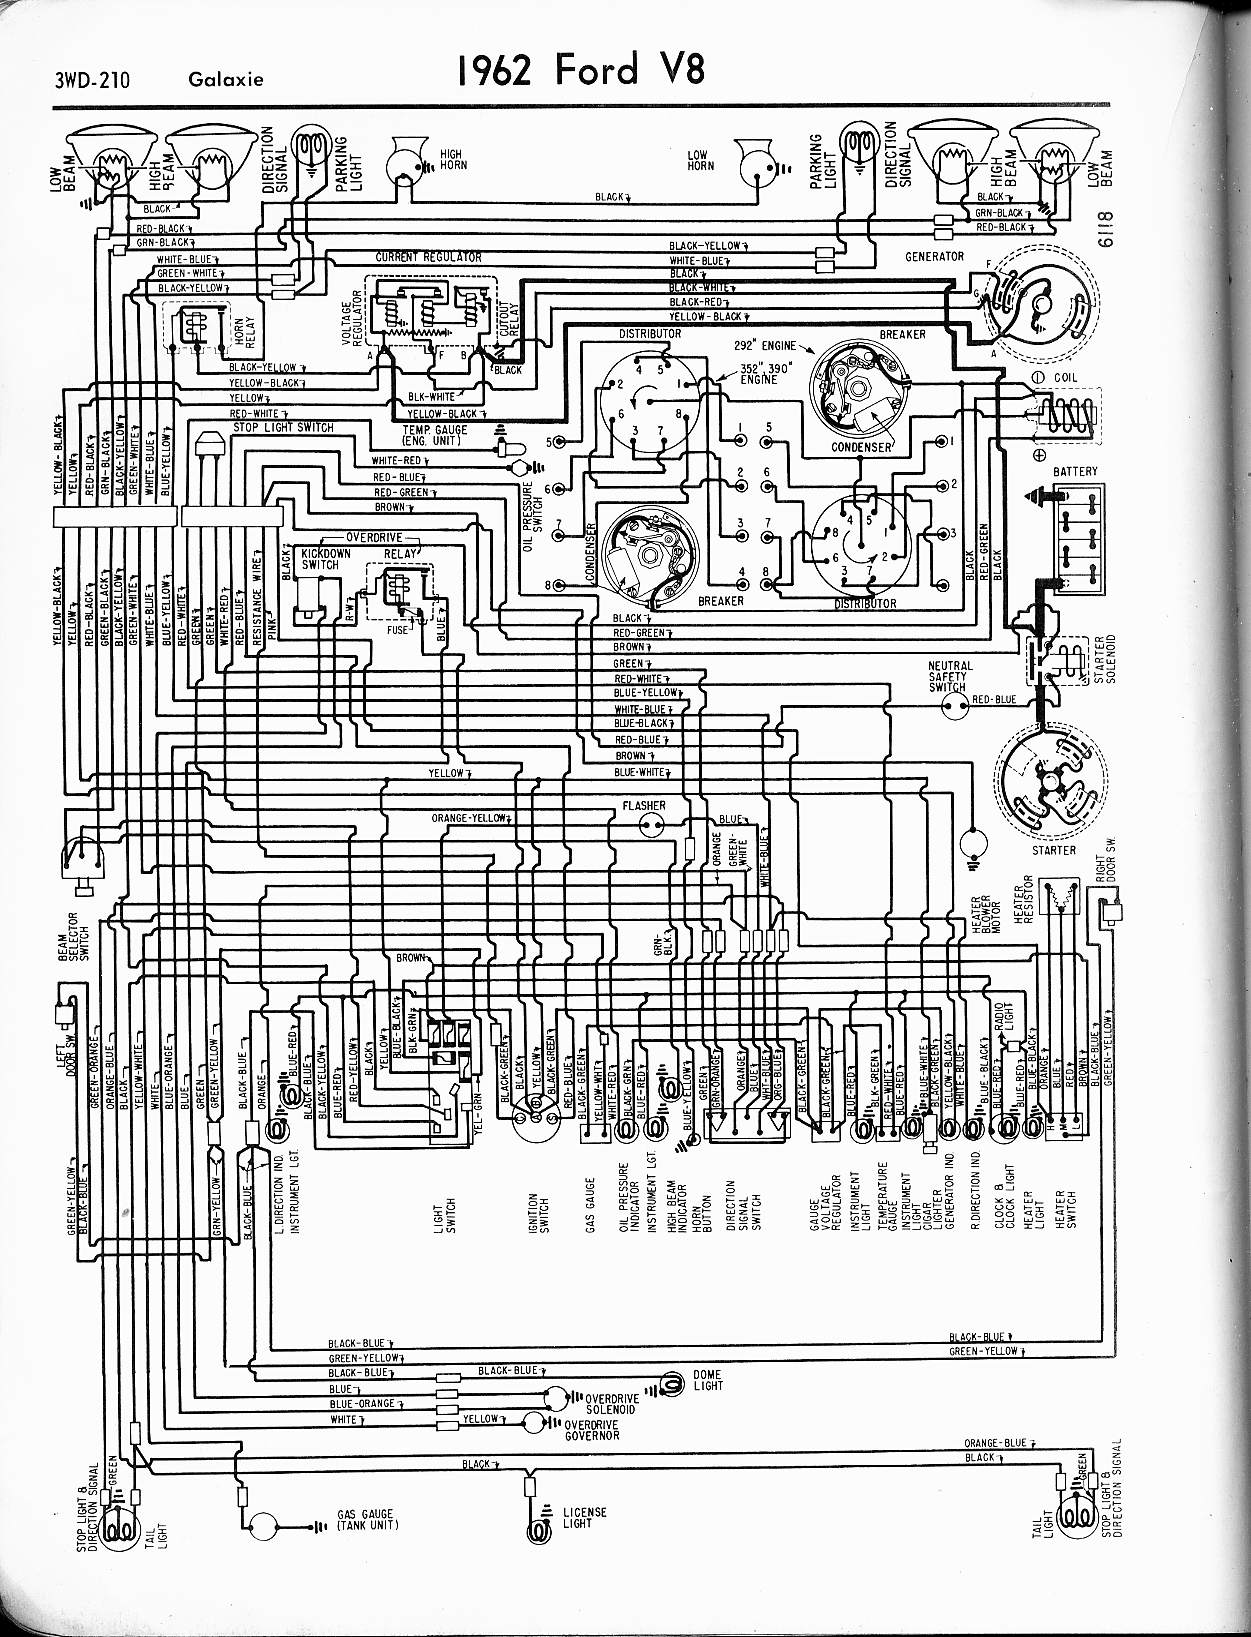 MWire5765 210 57 65 ford wiring diagrams 1968 ford galaxie 500 wiring diagram at fashall.co